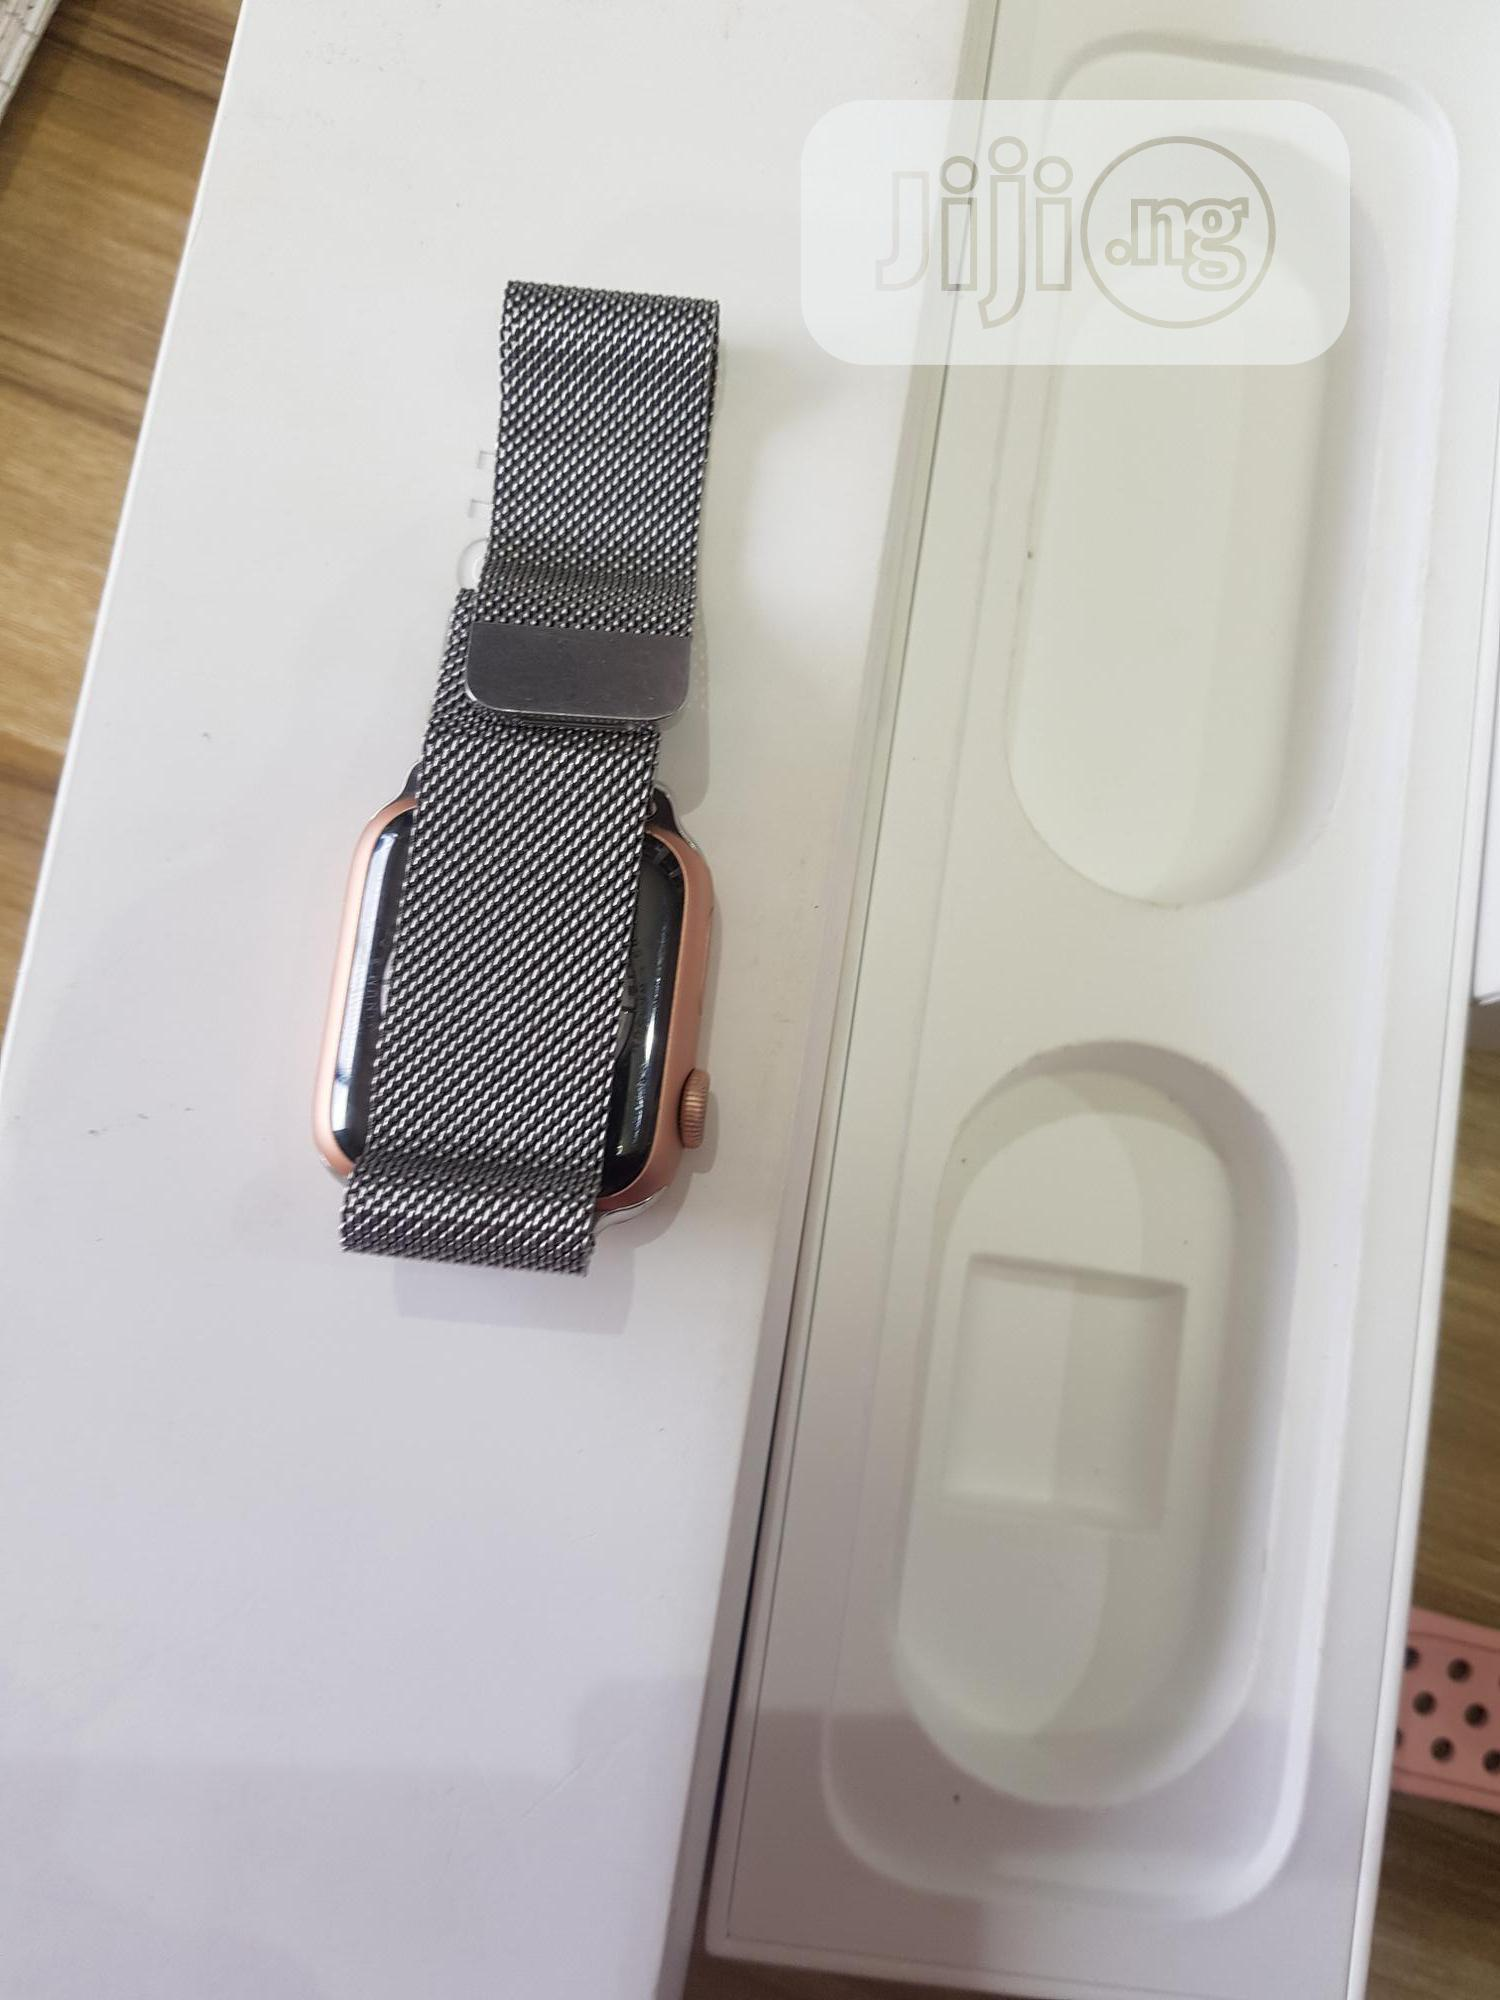 London Used Chain Apple Watch Series 4 40mm For Sale